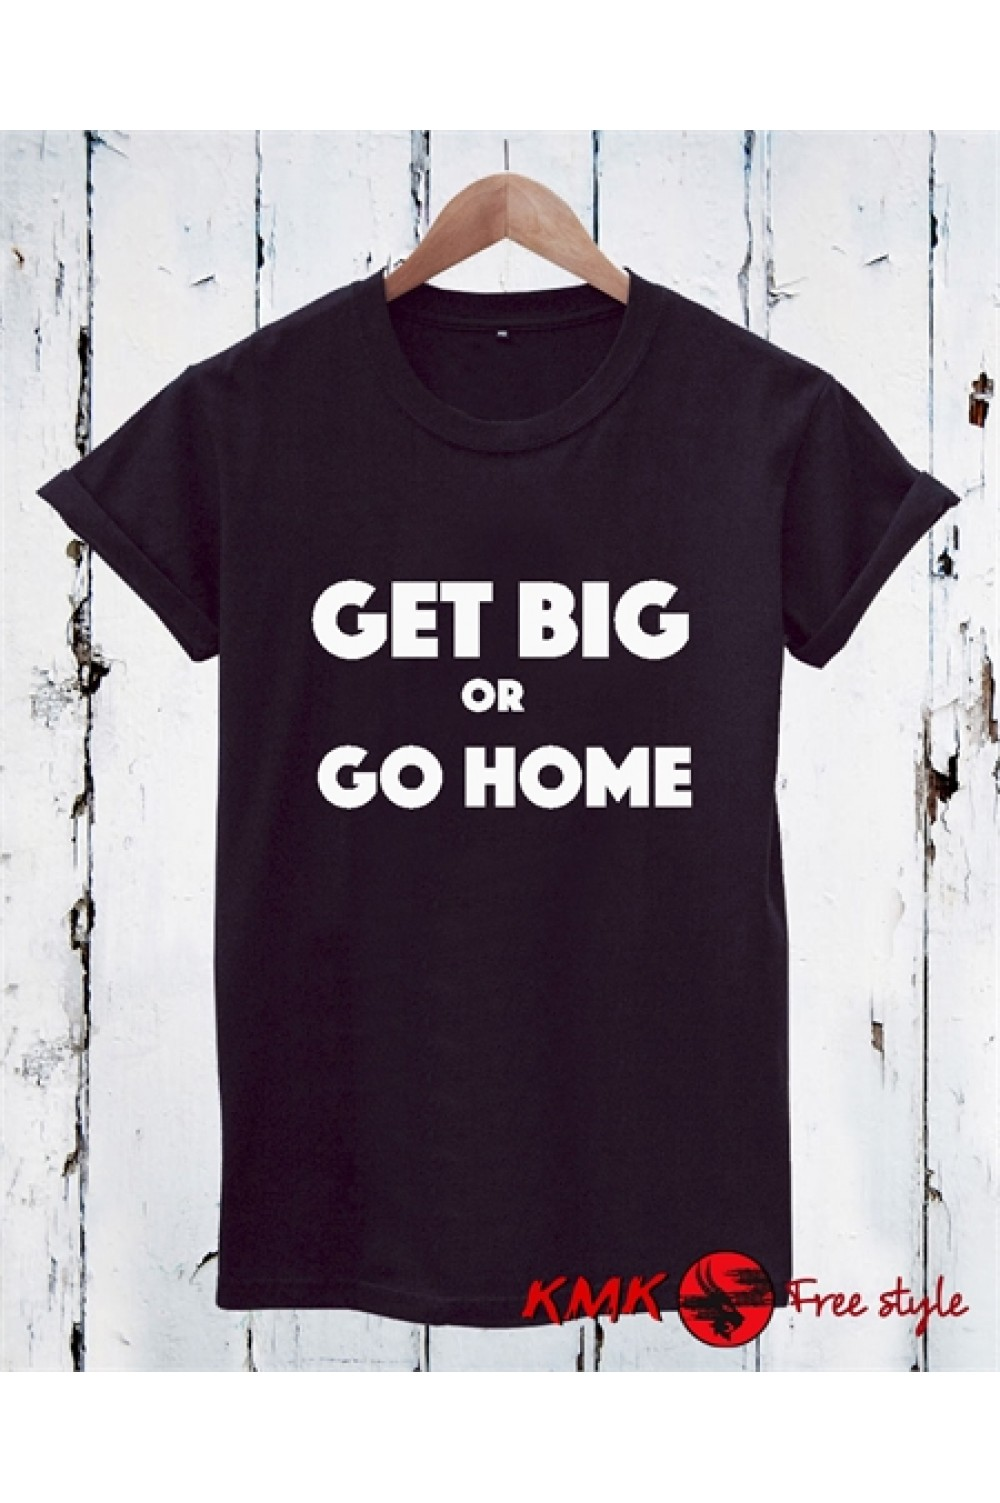 Get big or go home Printed T shirt | Gym Tanktop | Motivation Shirt